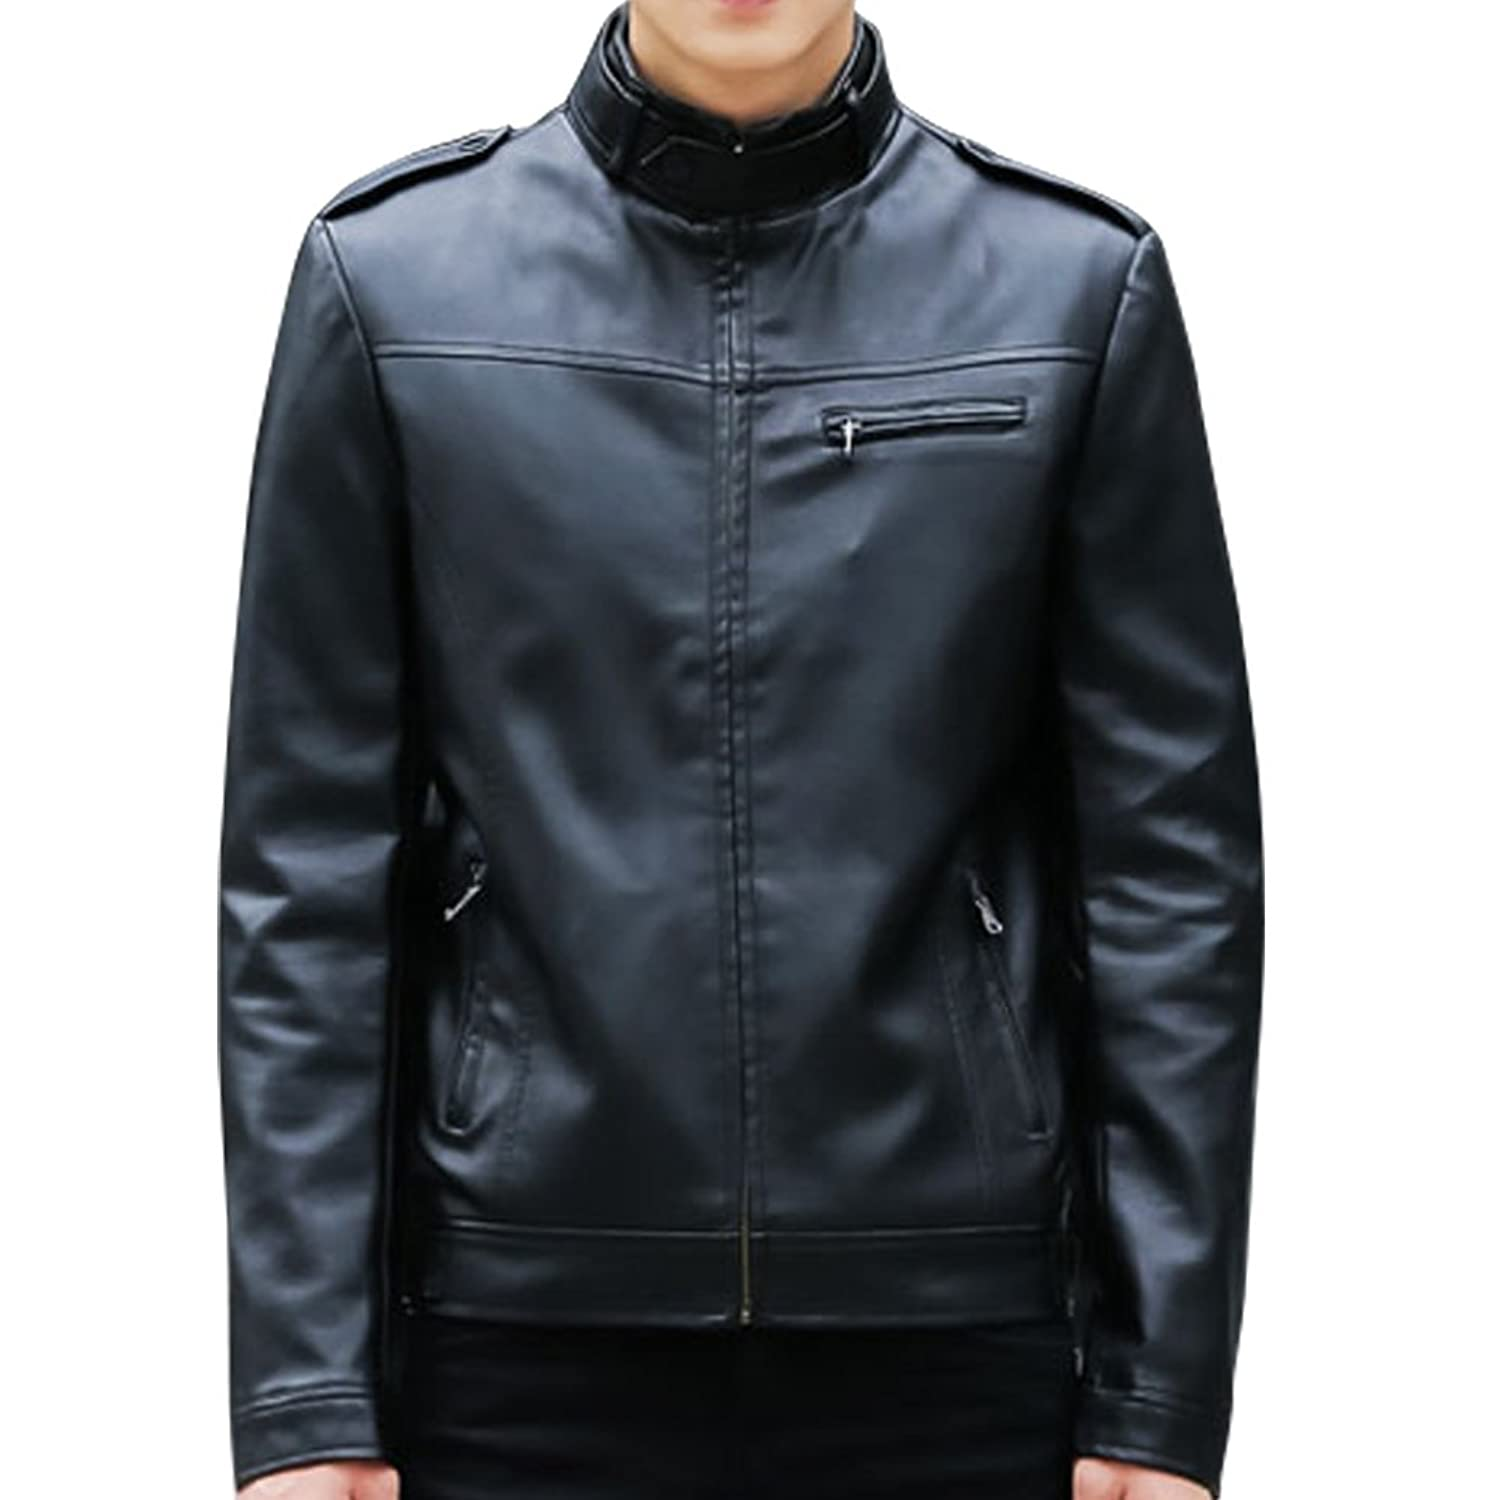 WB Fashion jacket Motorcycle Genuine Leather jacket men sheepskin coat jacket Spring